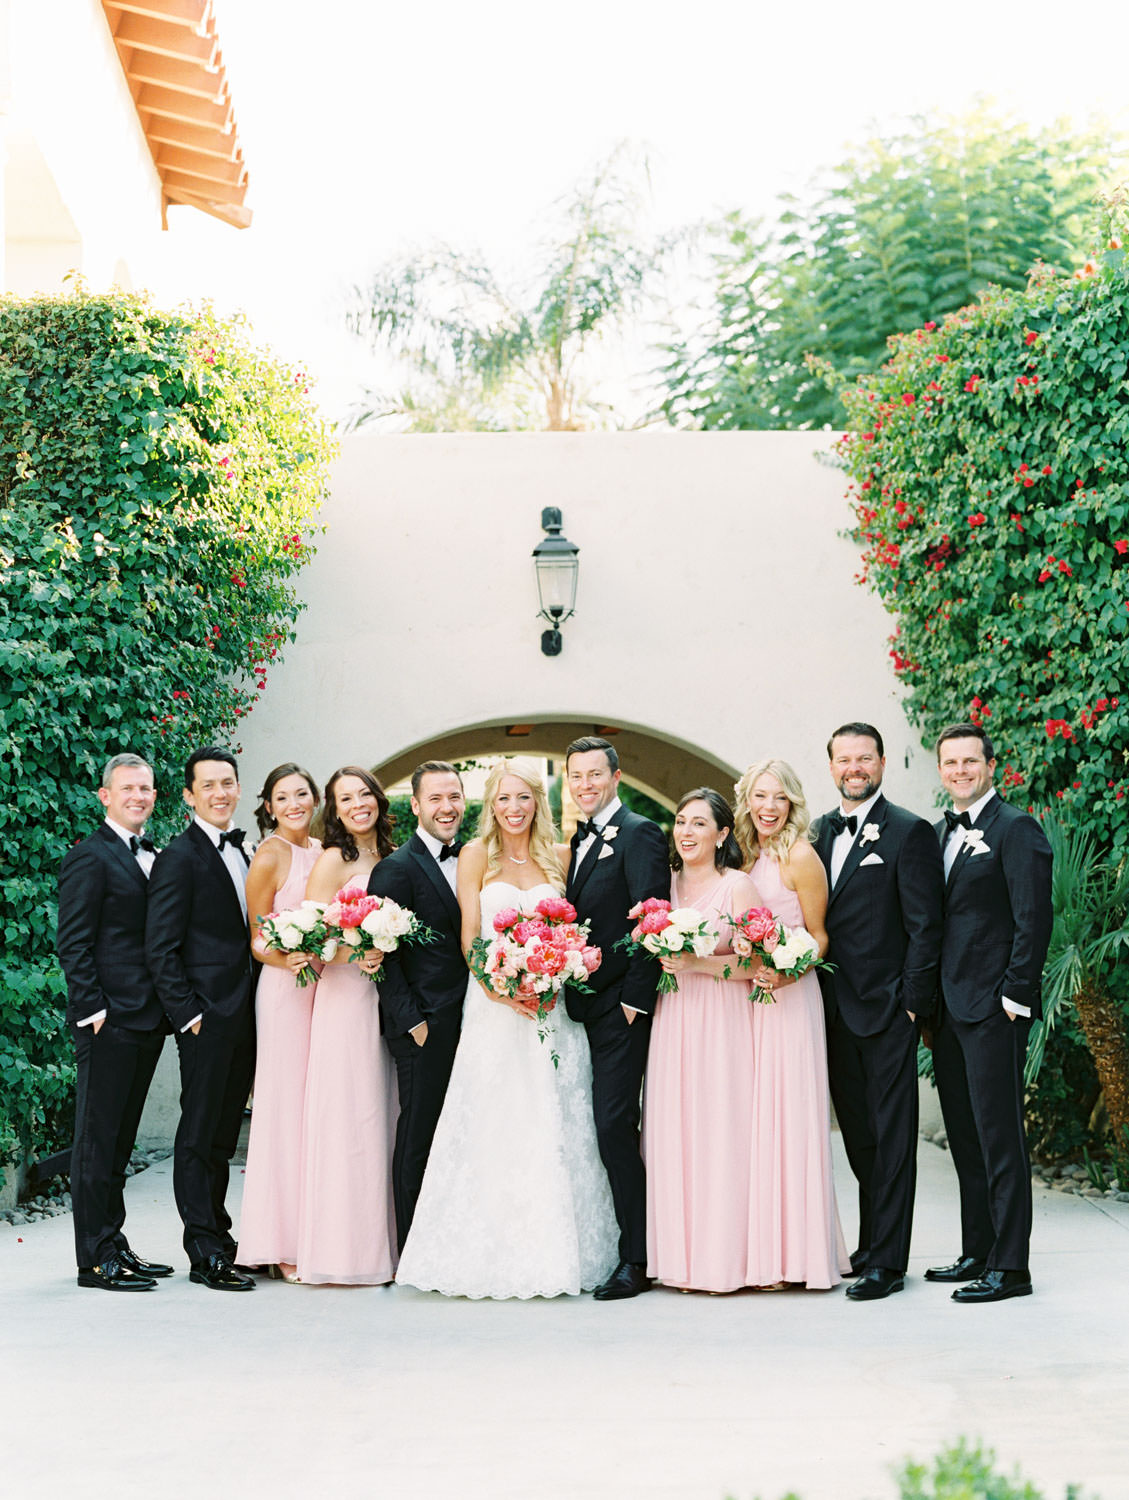 Bridal party portrait of bridesmaids in pink dresses and groomsmen in black tuxedos and bride wearing a lace Watters sweetheart gown with large bridal bouquet of pink tones with peonies and roses. Miramonte Resort wedding. Film photography by Cavin Elizabeth.